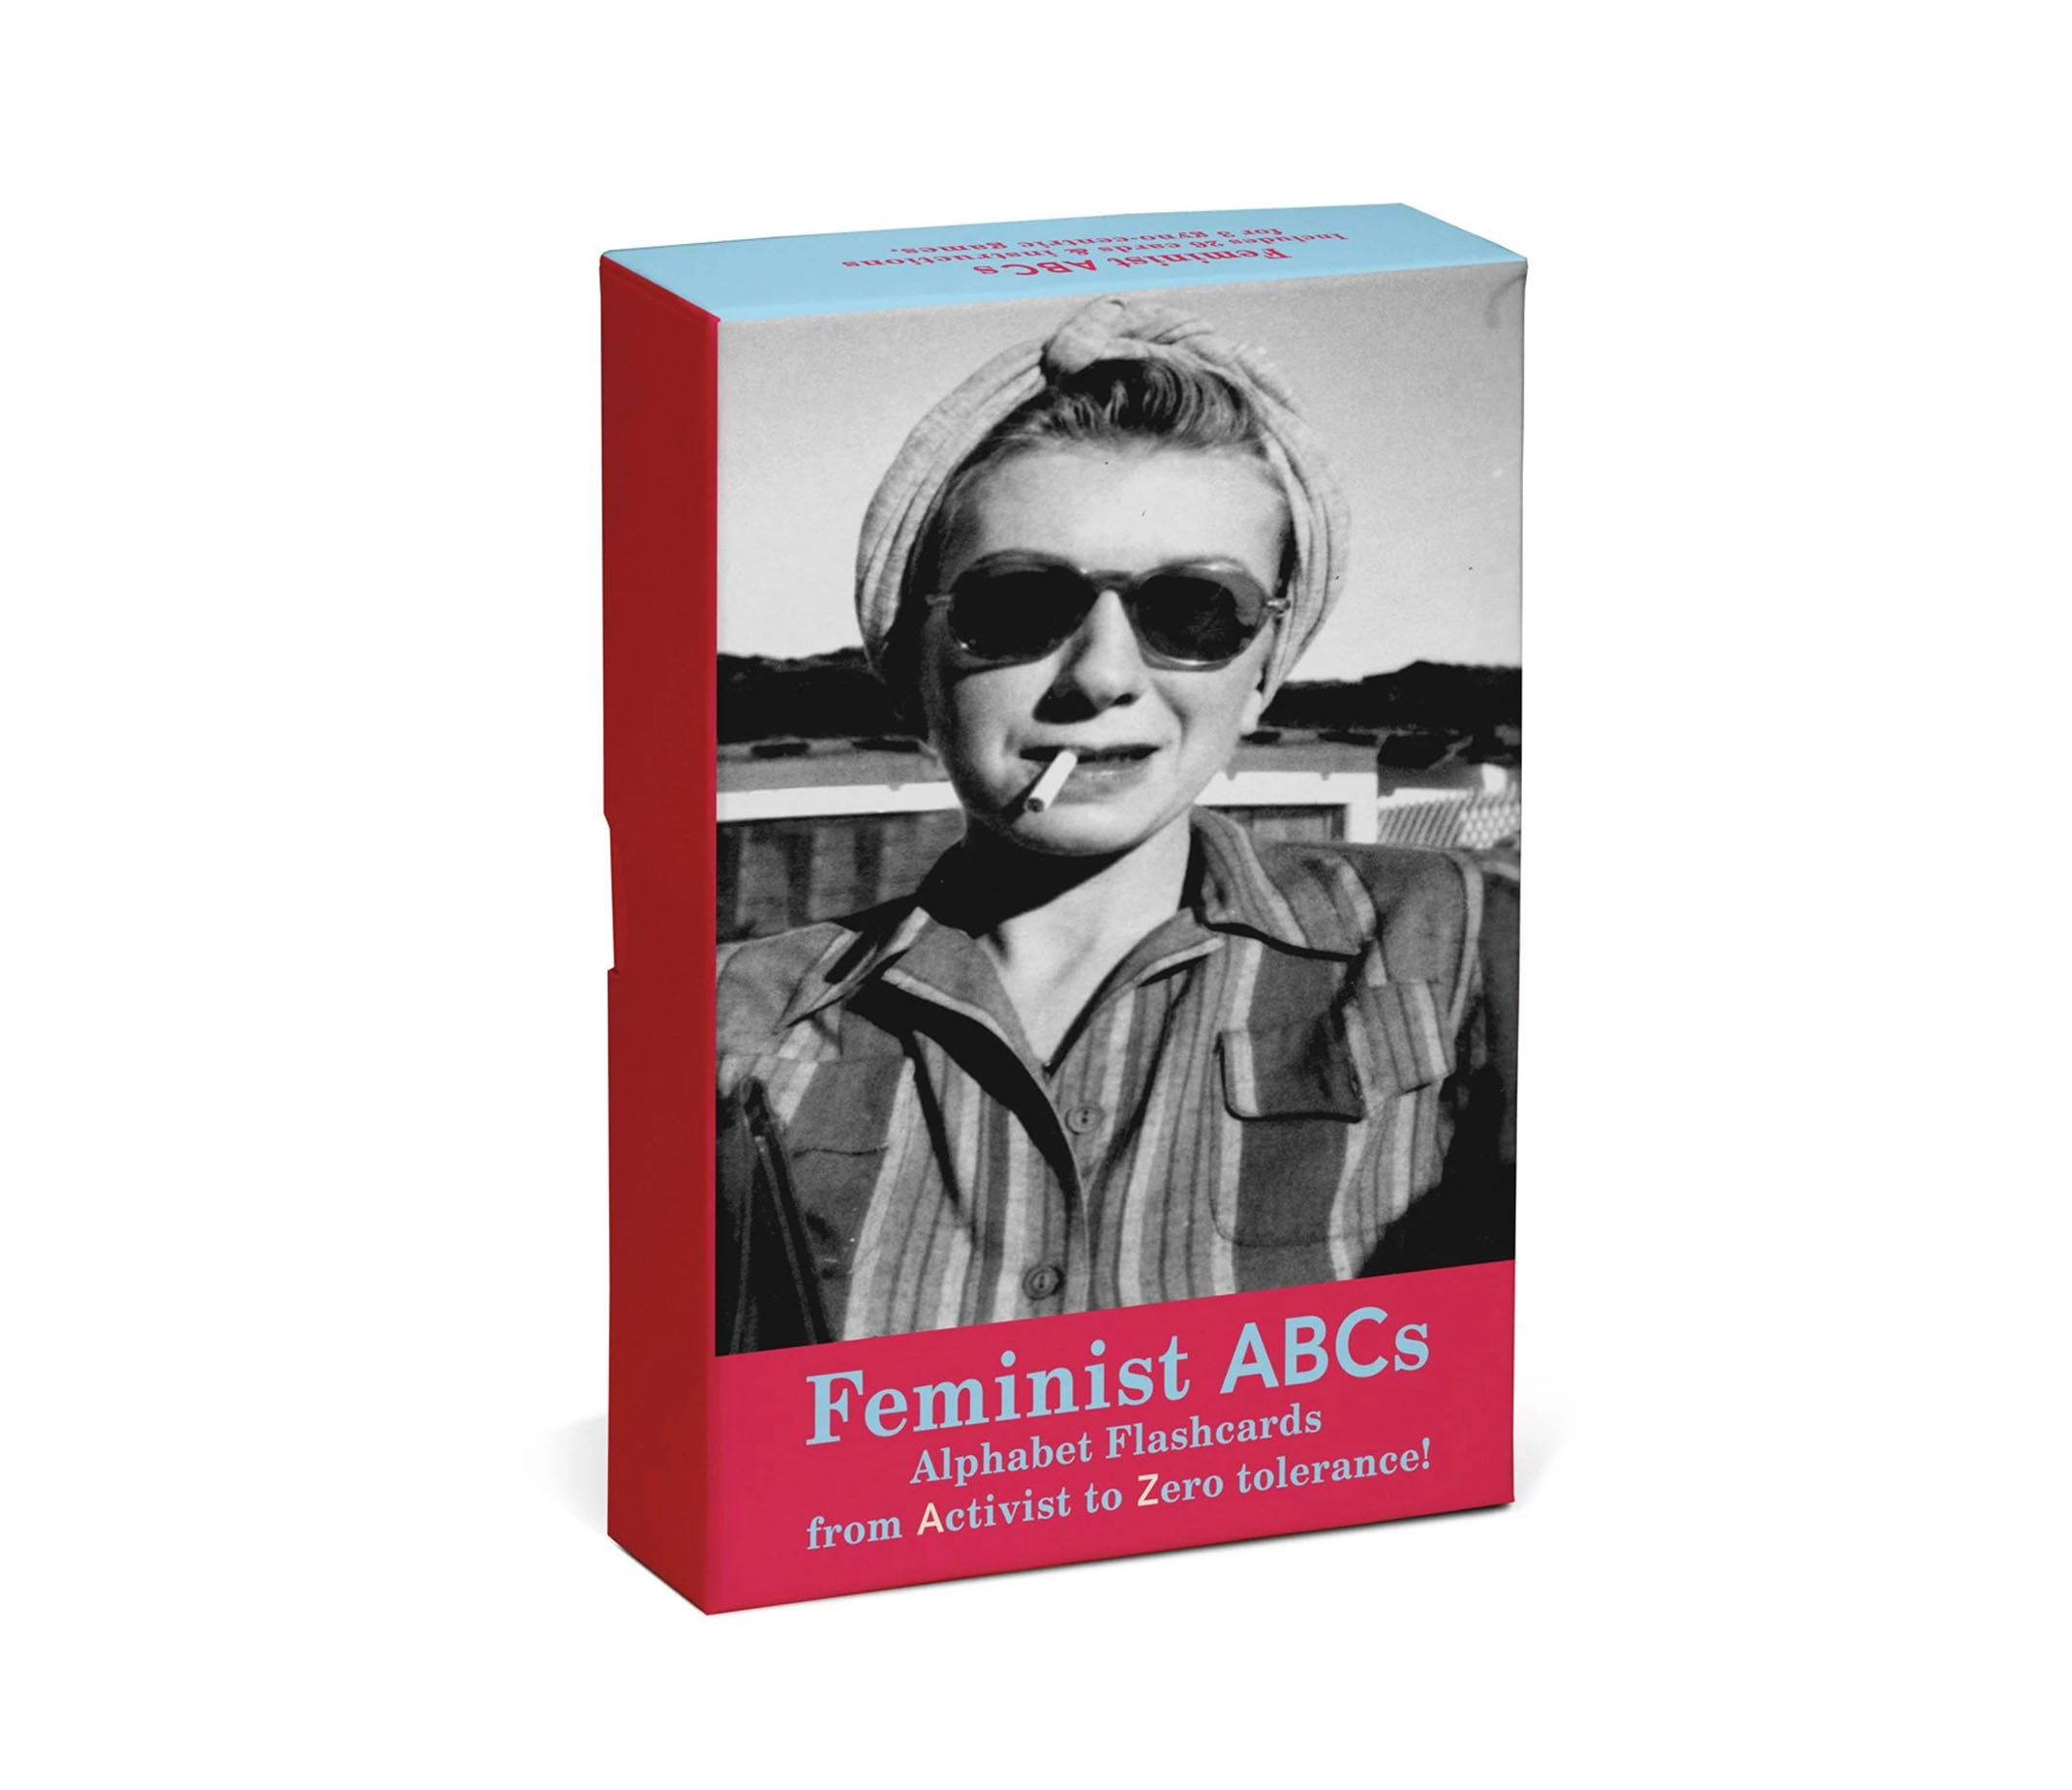 On an angle the Feminist ABC box is displayed. The box features a woman in a black and white photograph from the 1950s with a cigarette in her mouth.